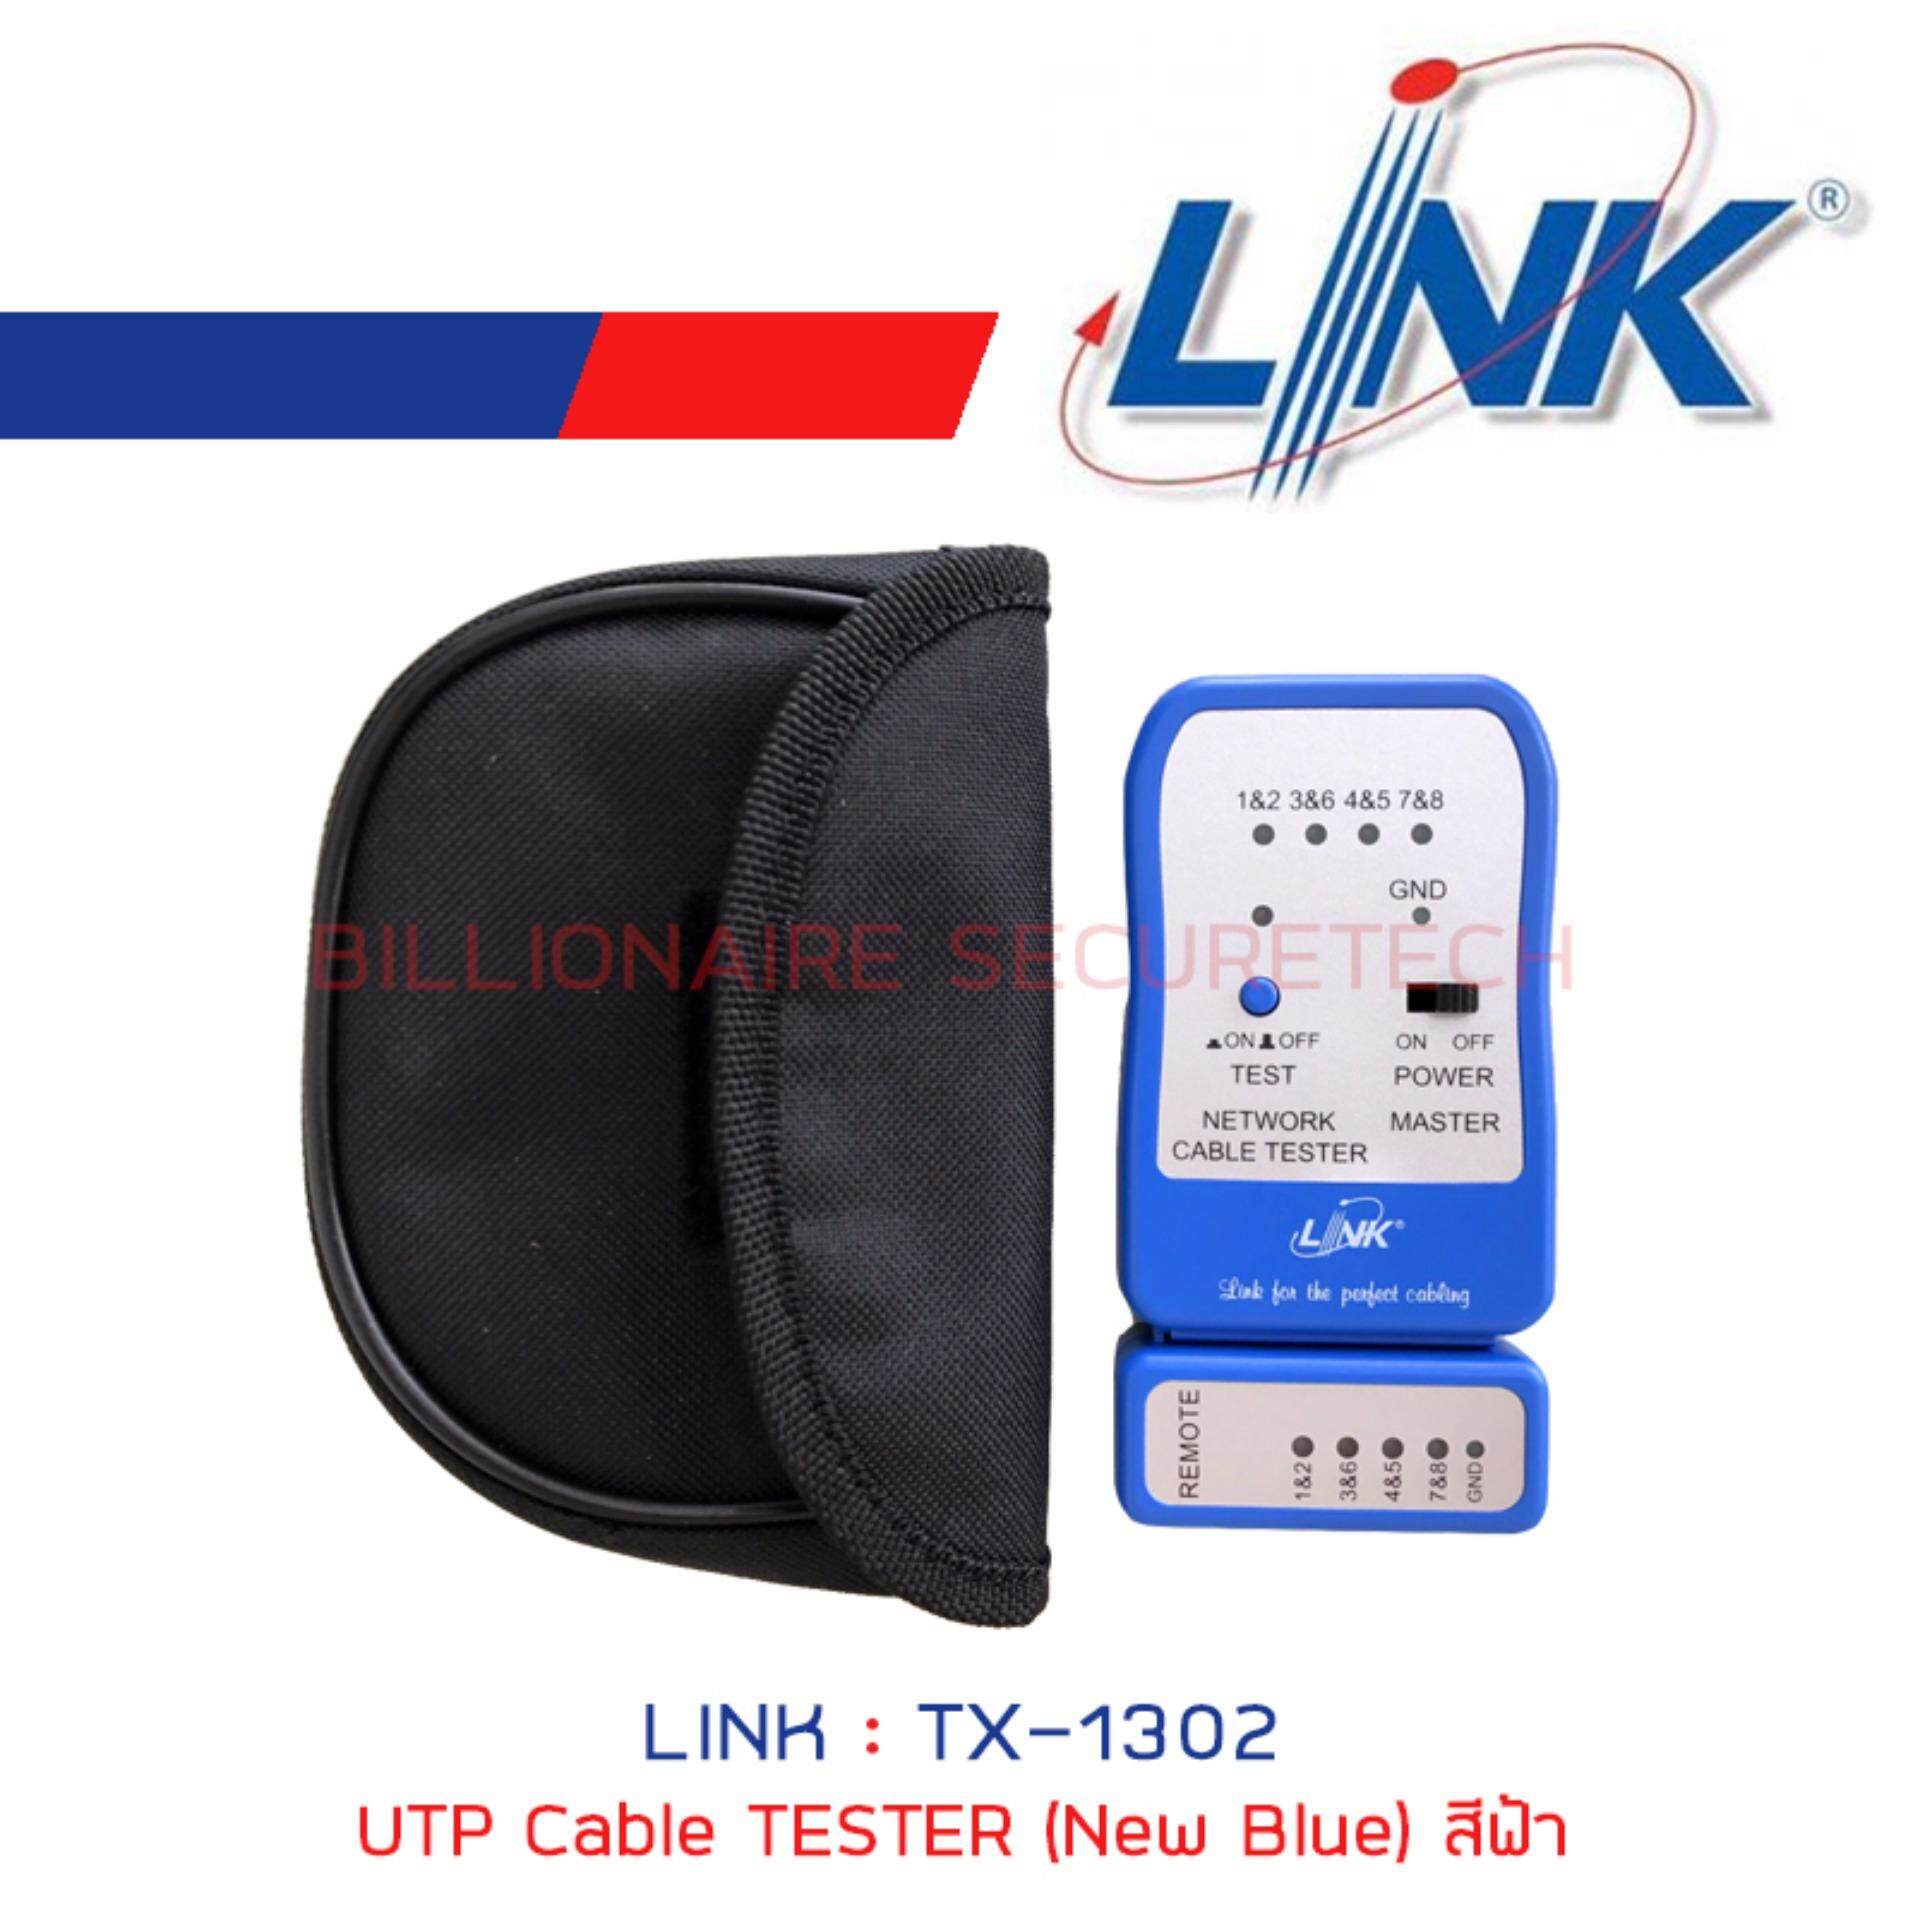 LINK TX-1302 UTP Cable TESTER (New Blue) สีฟ้า